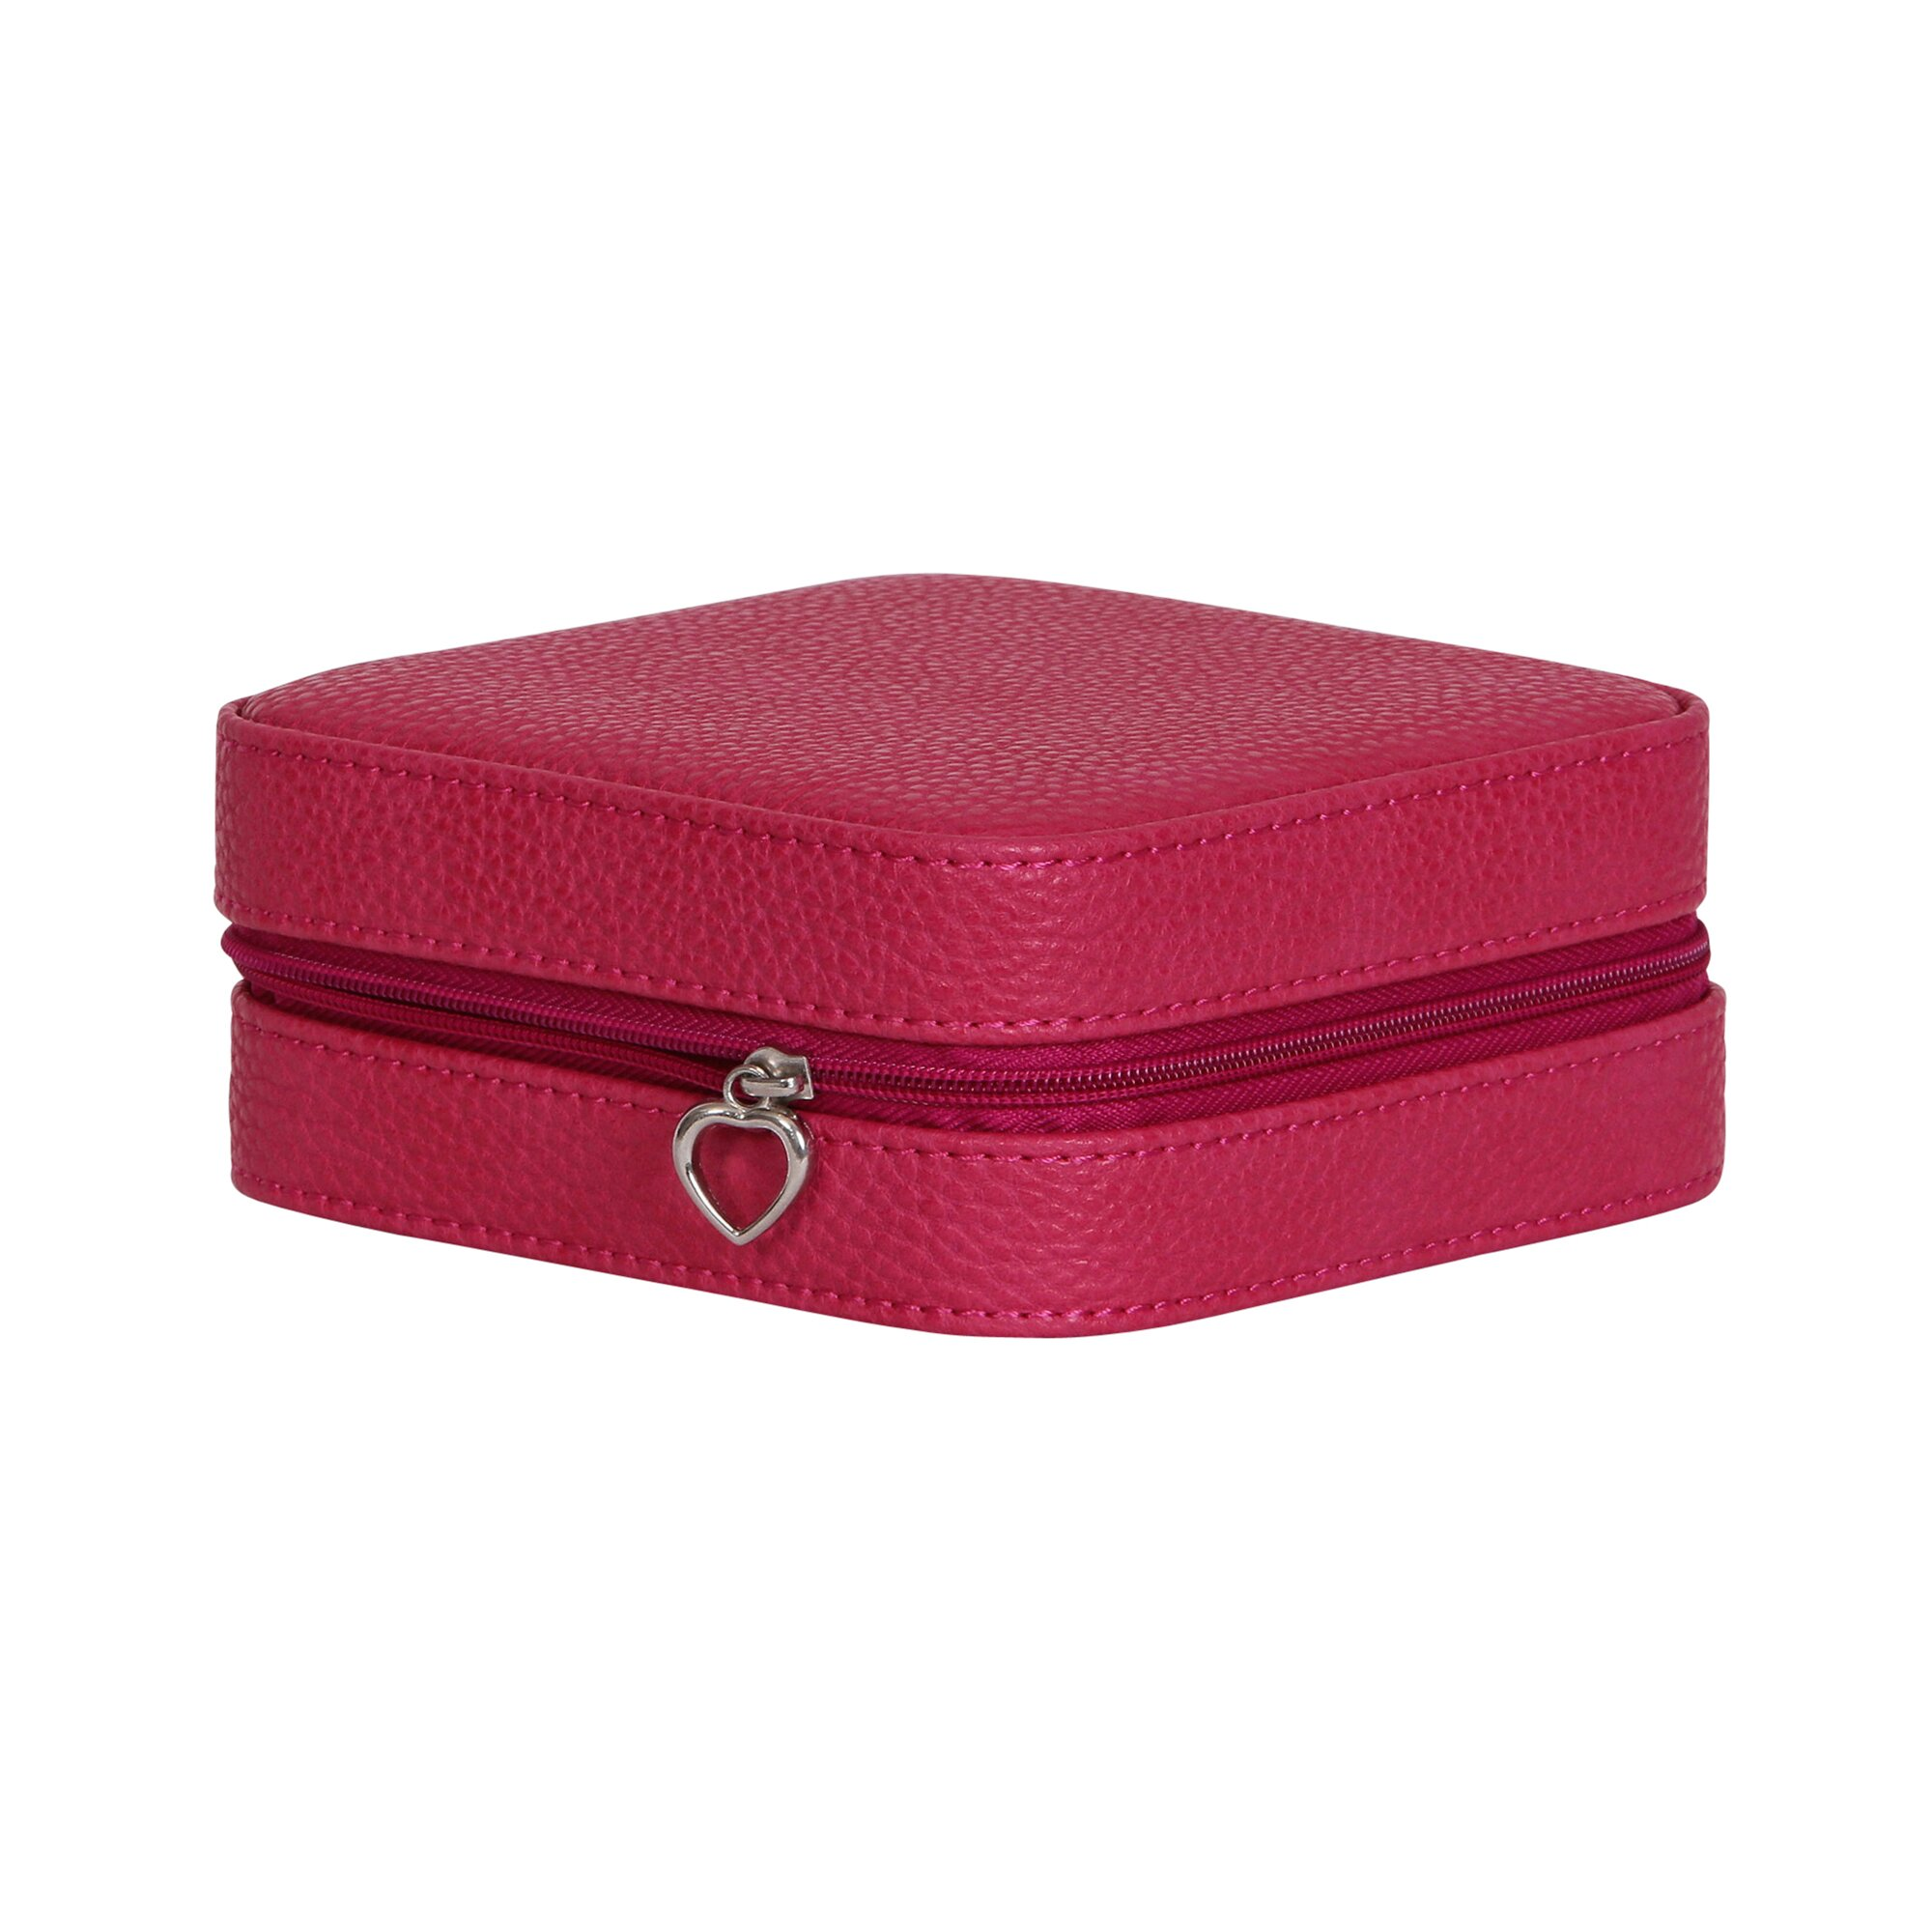 Mele & Co. Josette Travel Faux Leather Jewelry Case ...